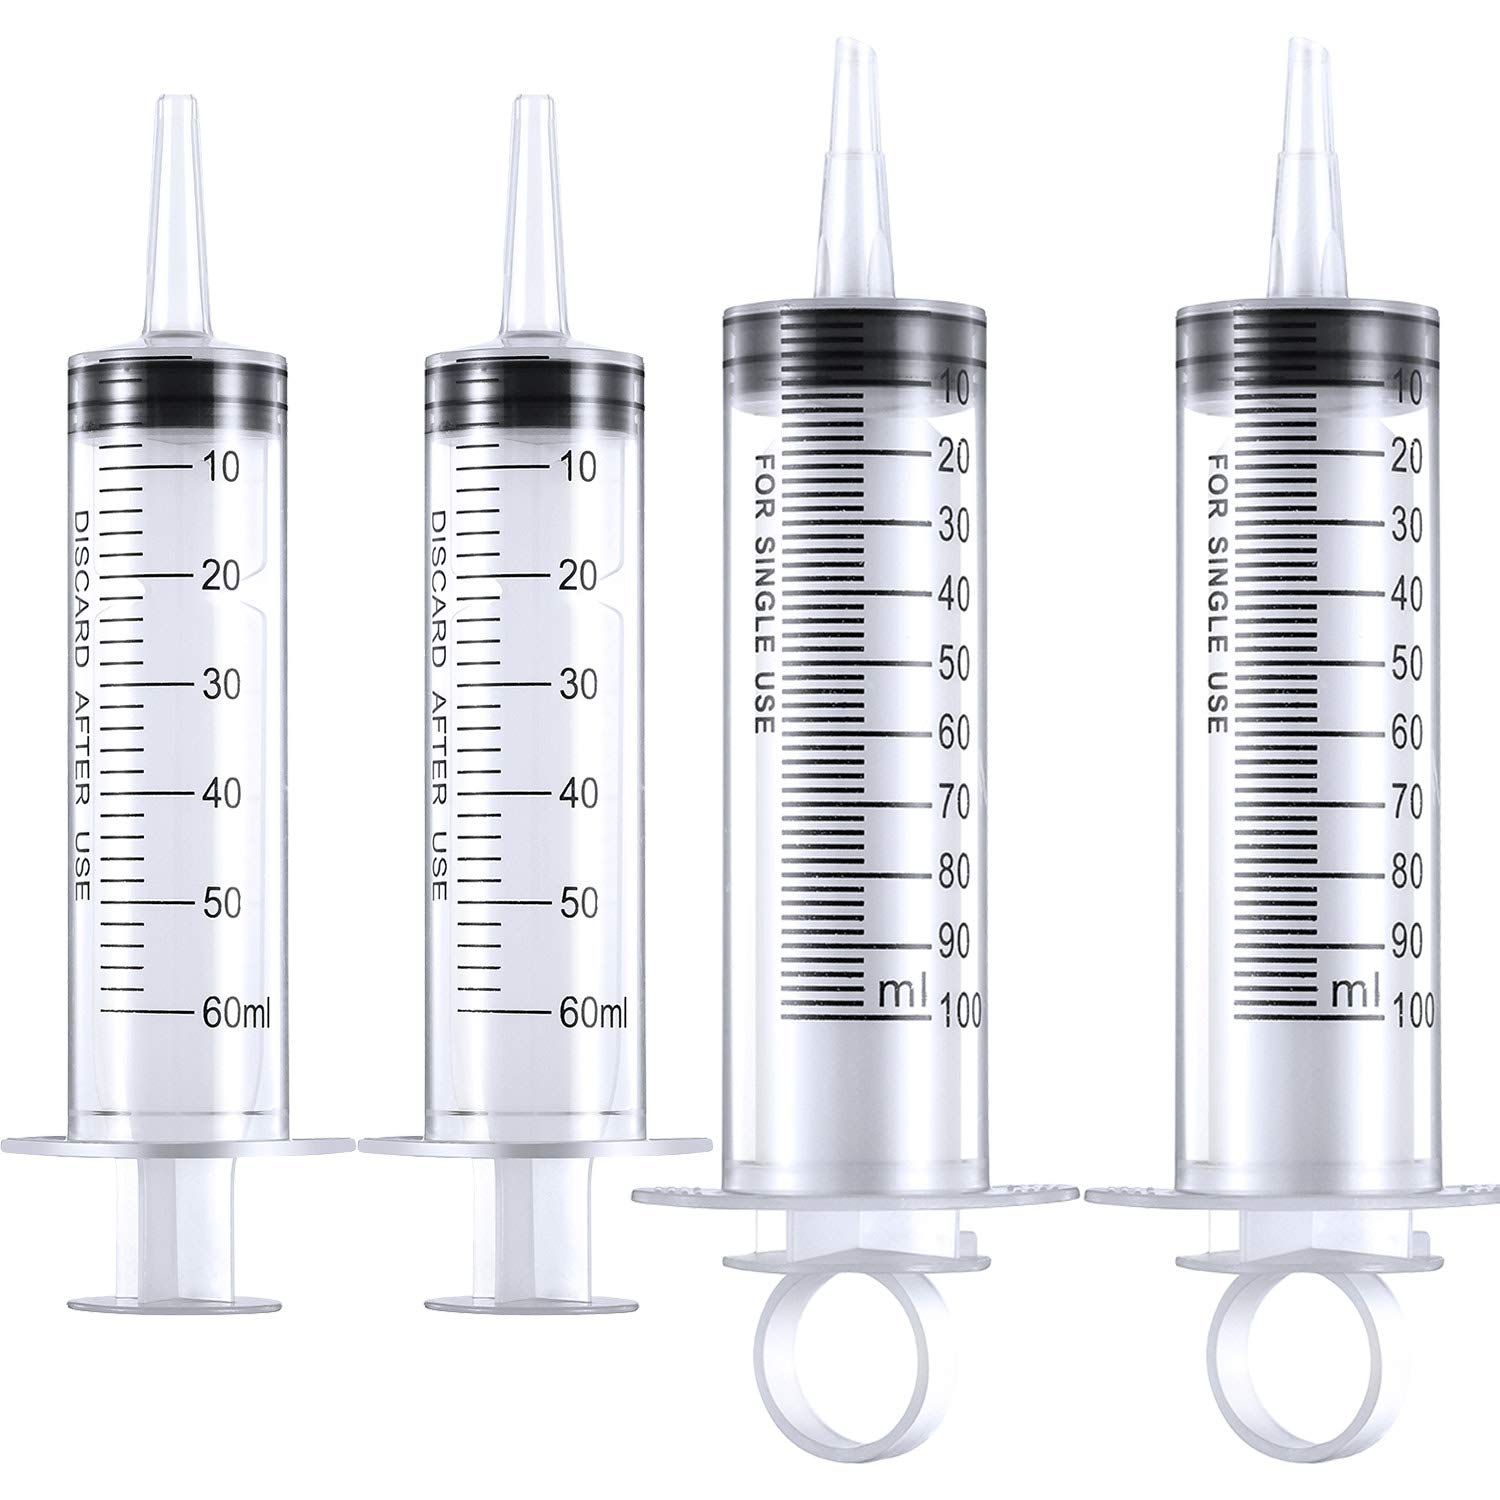 Frienda 4 Pack Large Plastic Syringe for Scientific Labs and Dispensing Multiple Uses Measuring Syringe Tools 60 ml and 100 ml